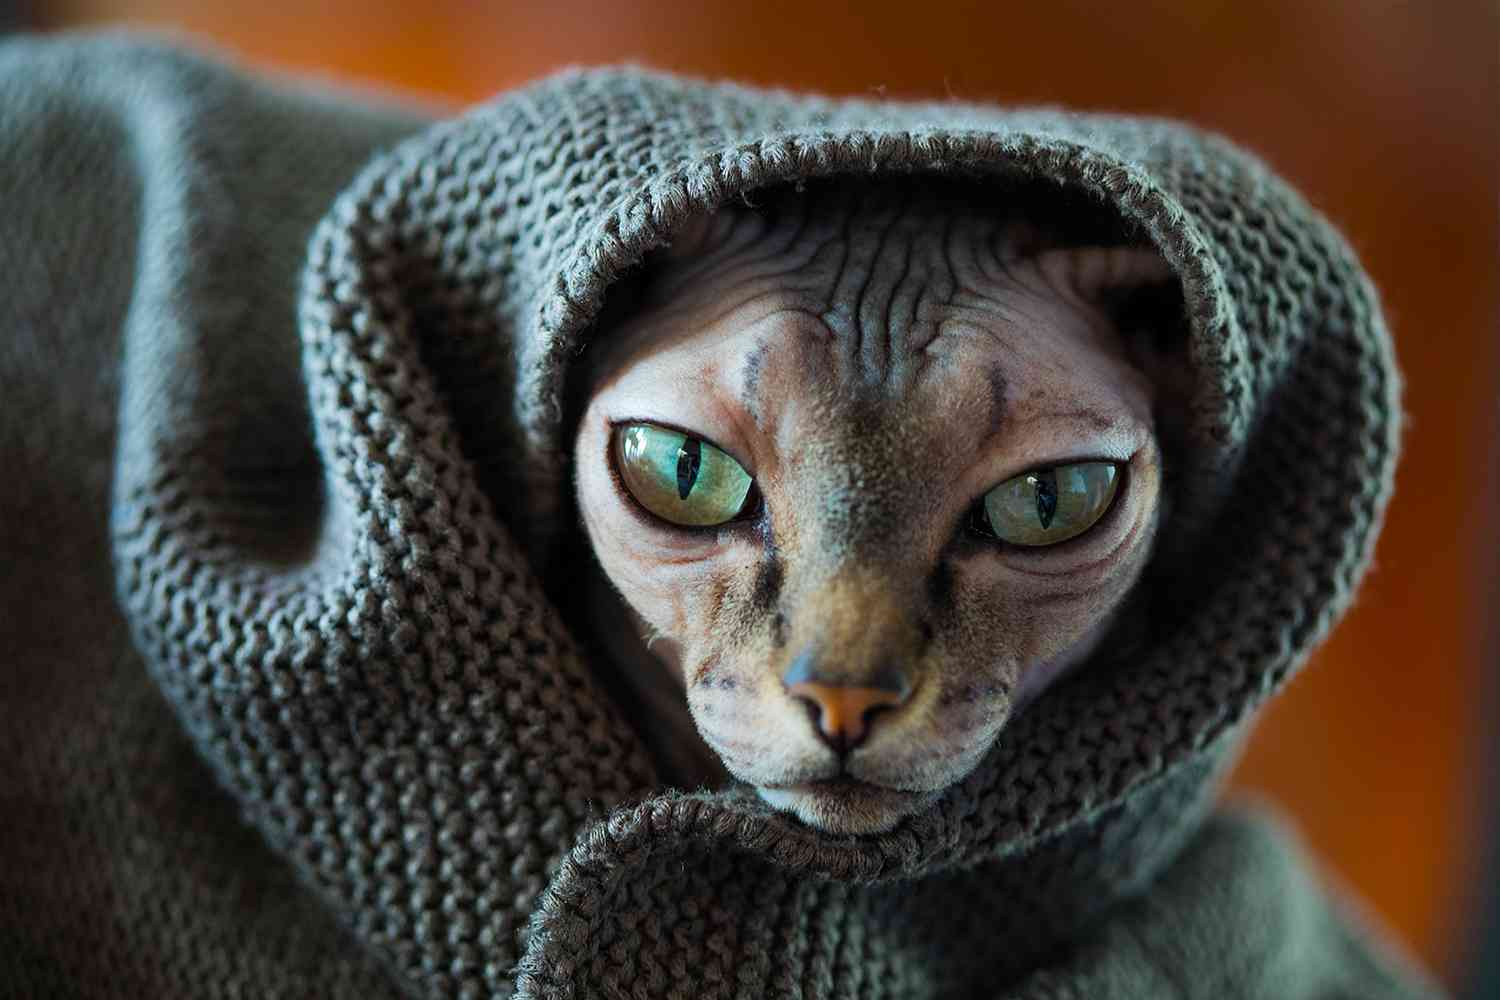 Finally you can buy a Sharia compliant hijab for your cat ...